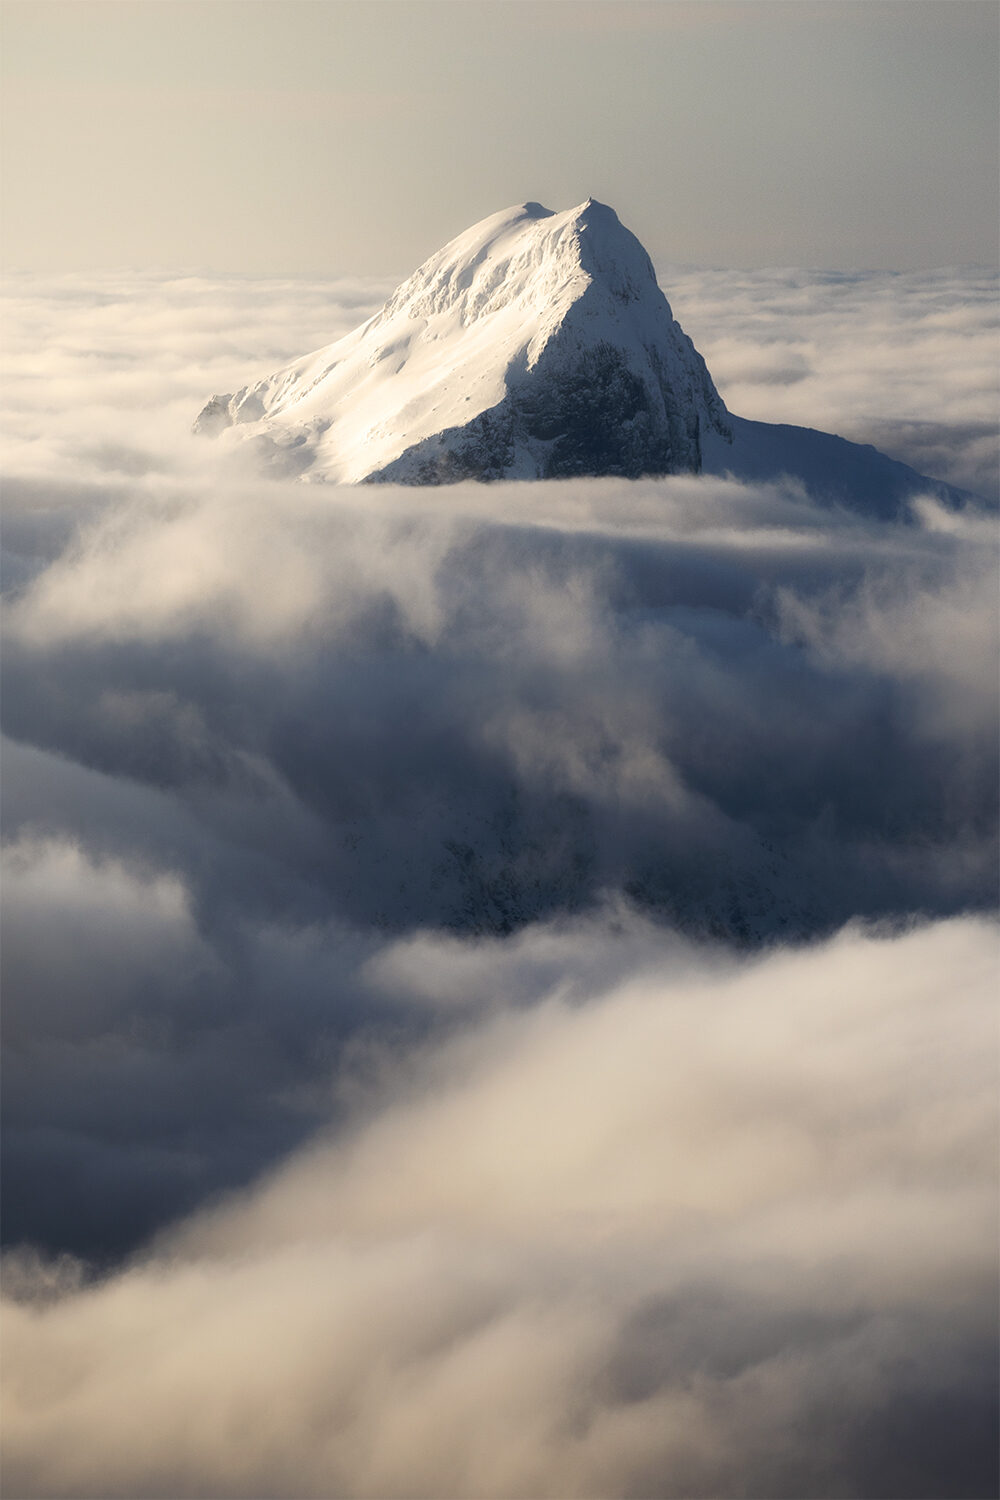 Mountain Peak above the clouds